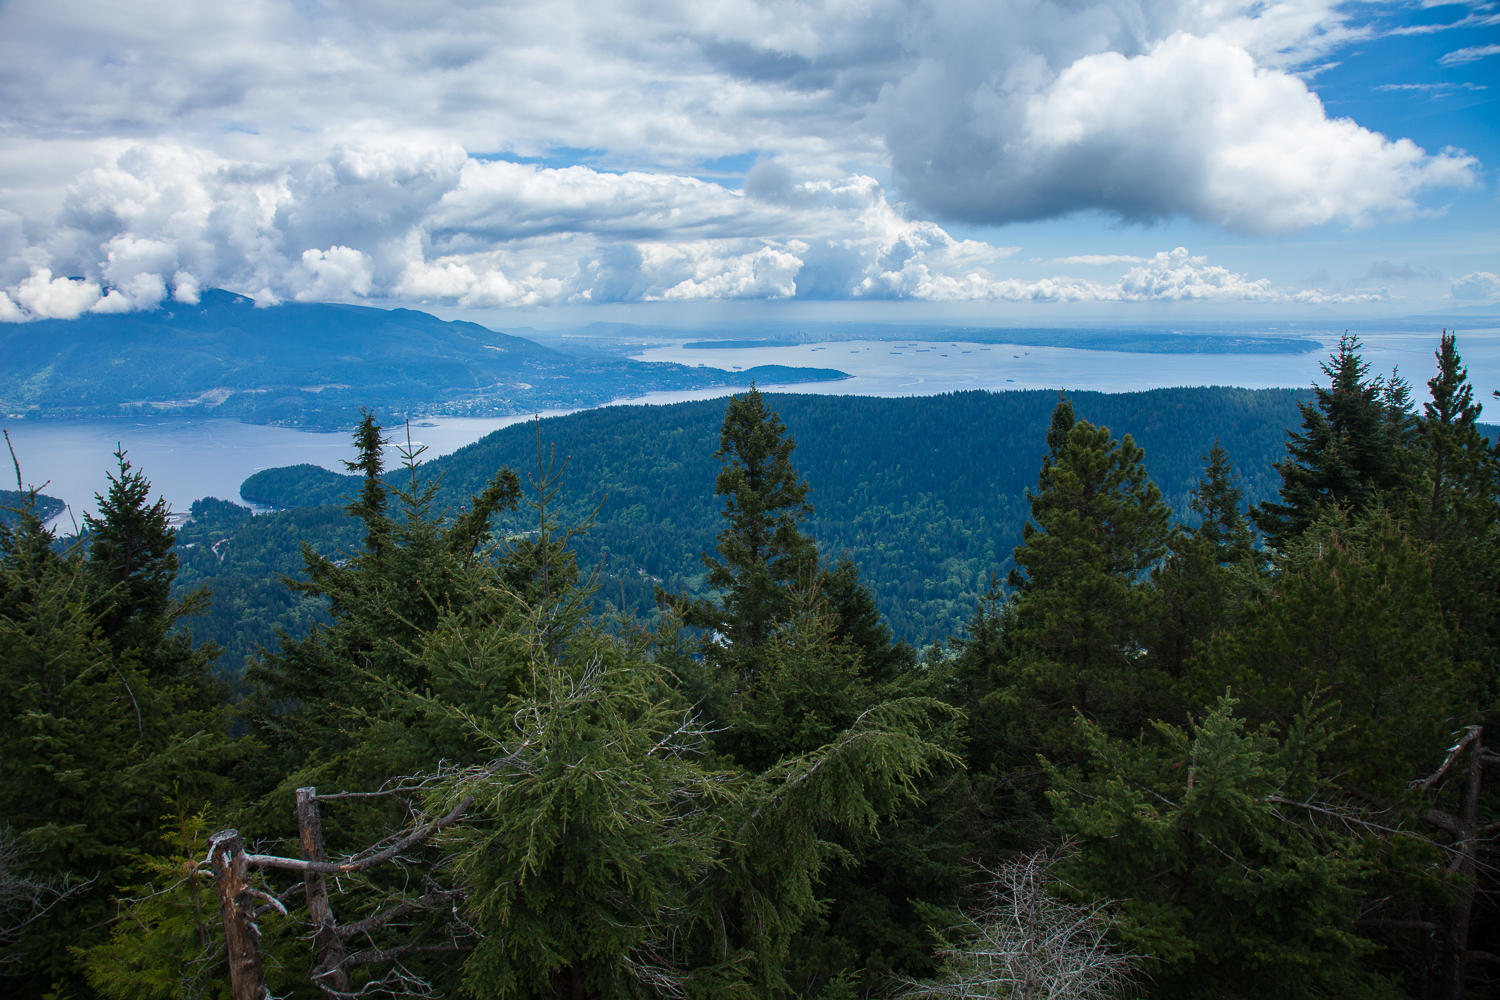 A slightly different perspective on the view from Mount Gardner.